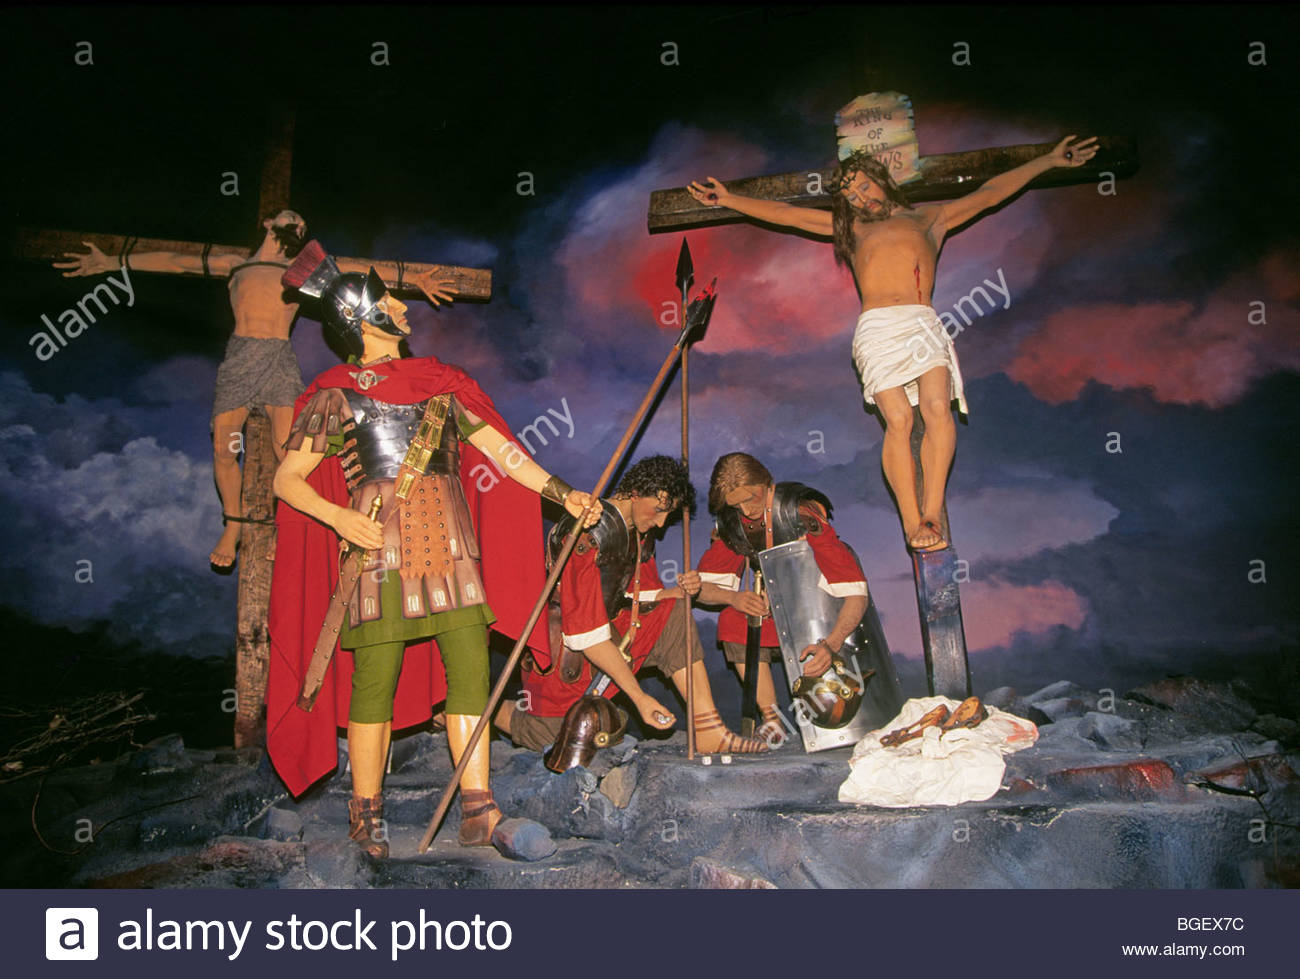 a depiction of roman soldiers and the crucifixion of jesus christ